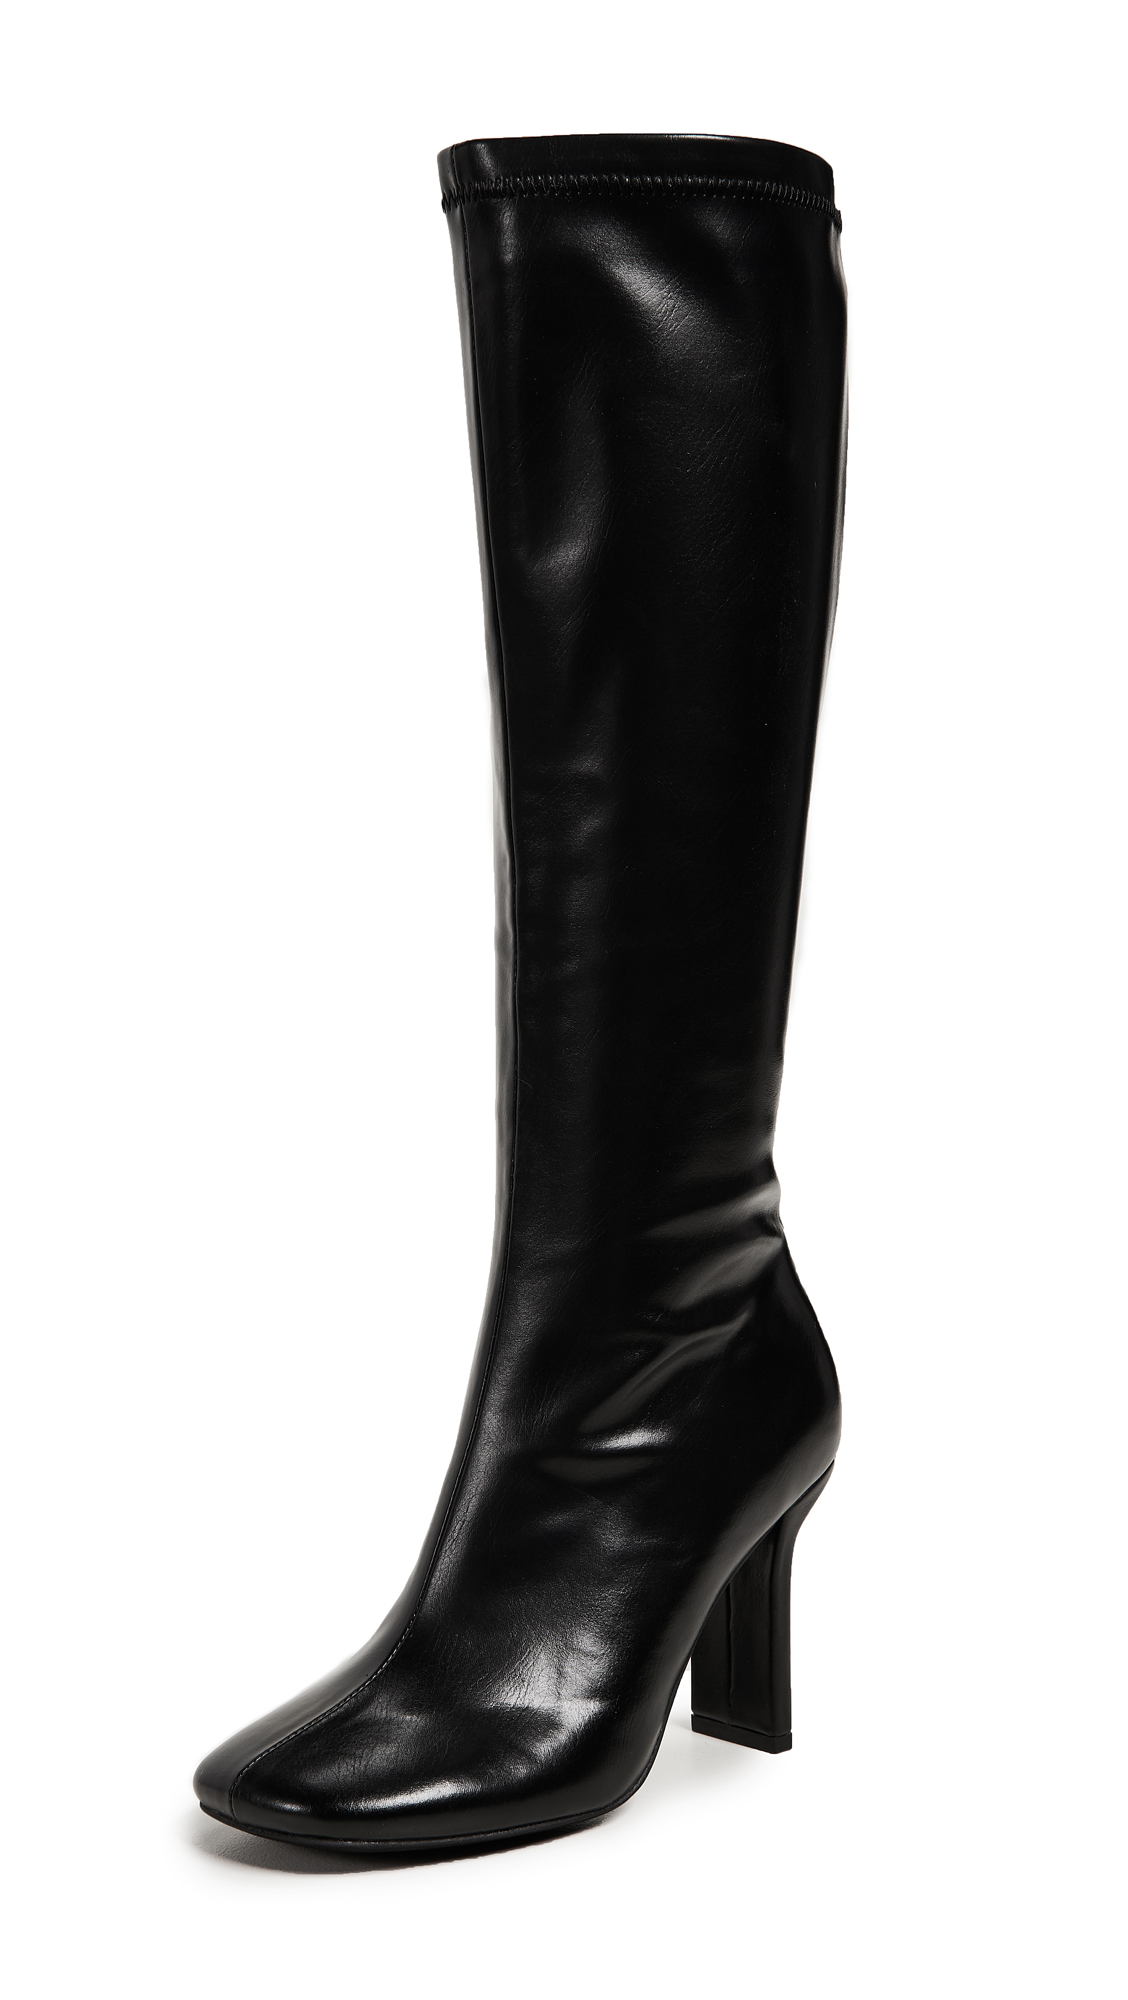 Jeffrey Campbell Obey Tall Boots - Black